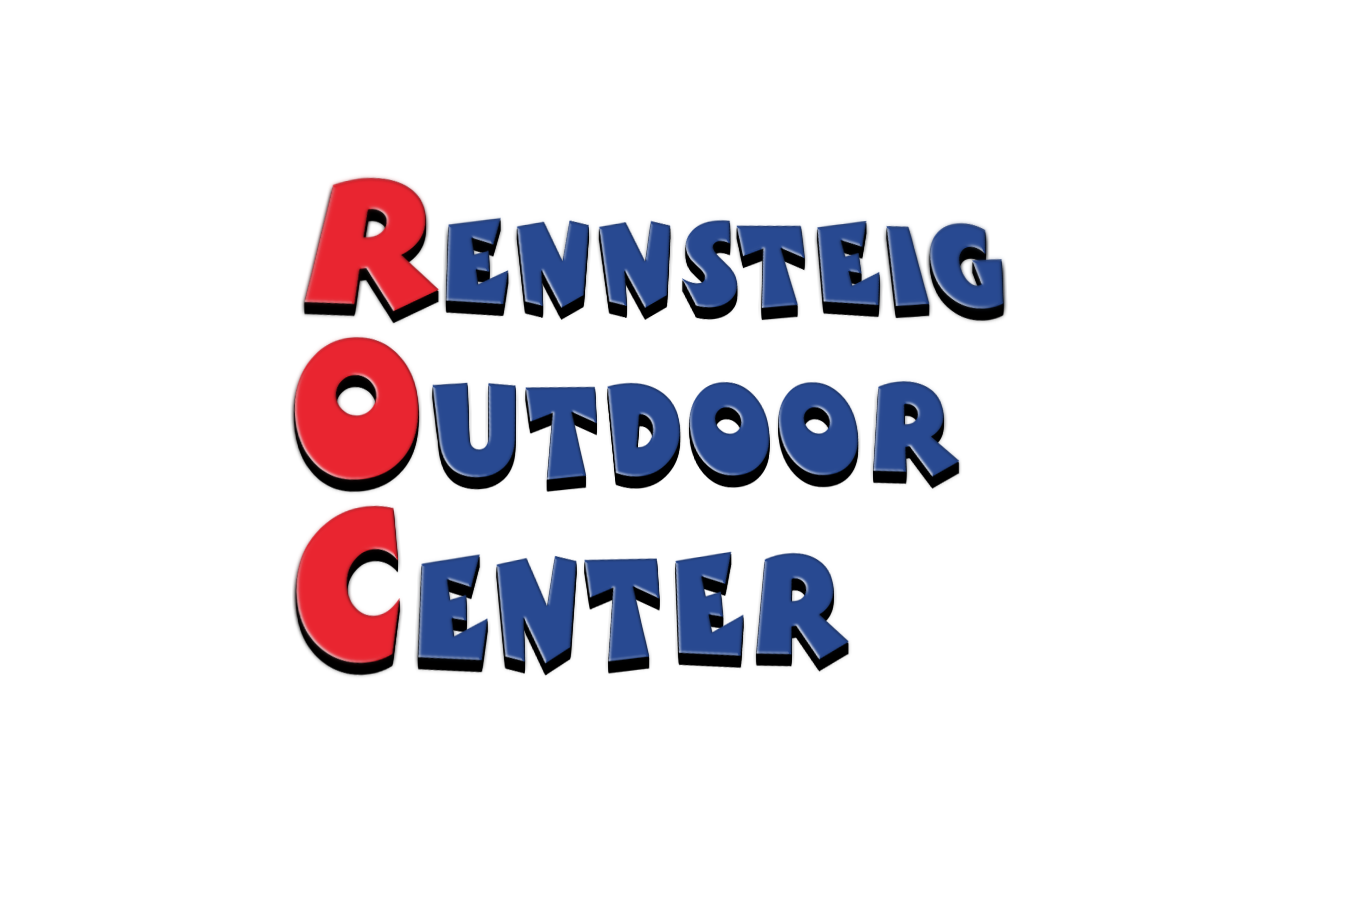 Rennsteig Outdoor Center